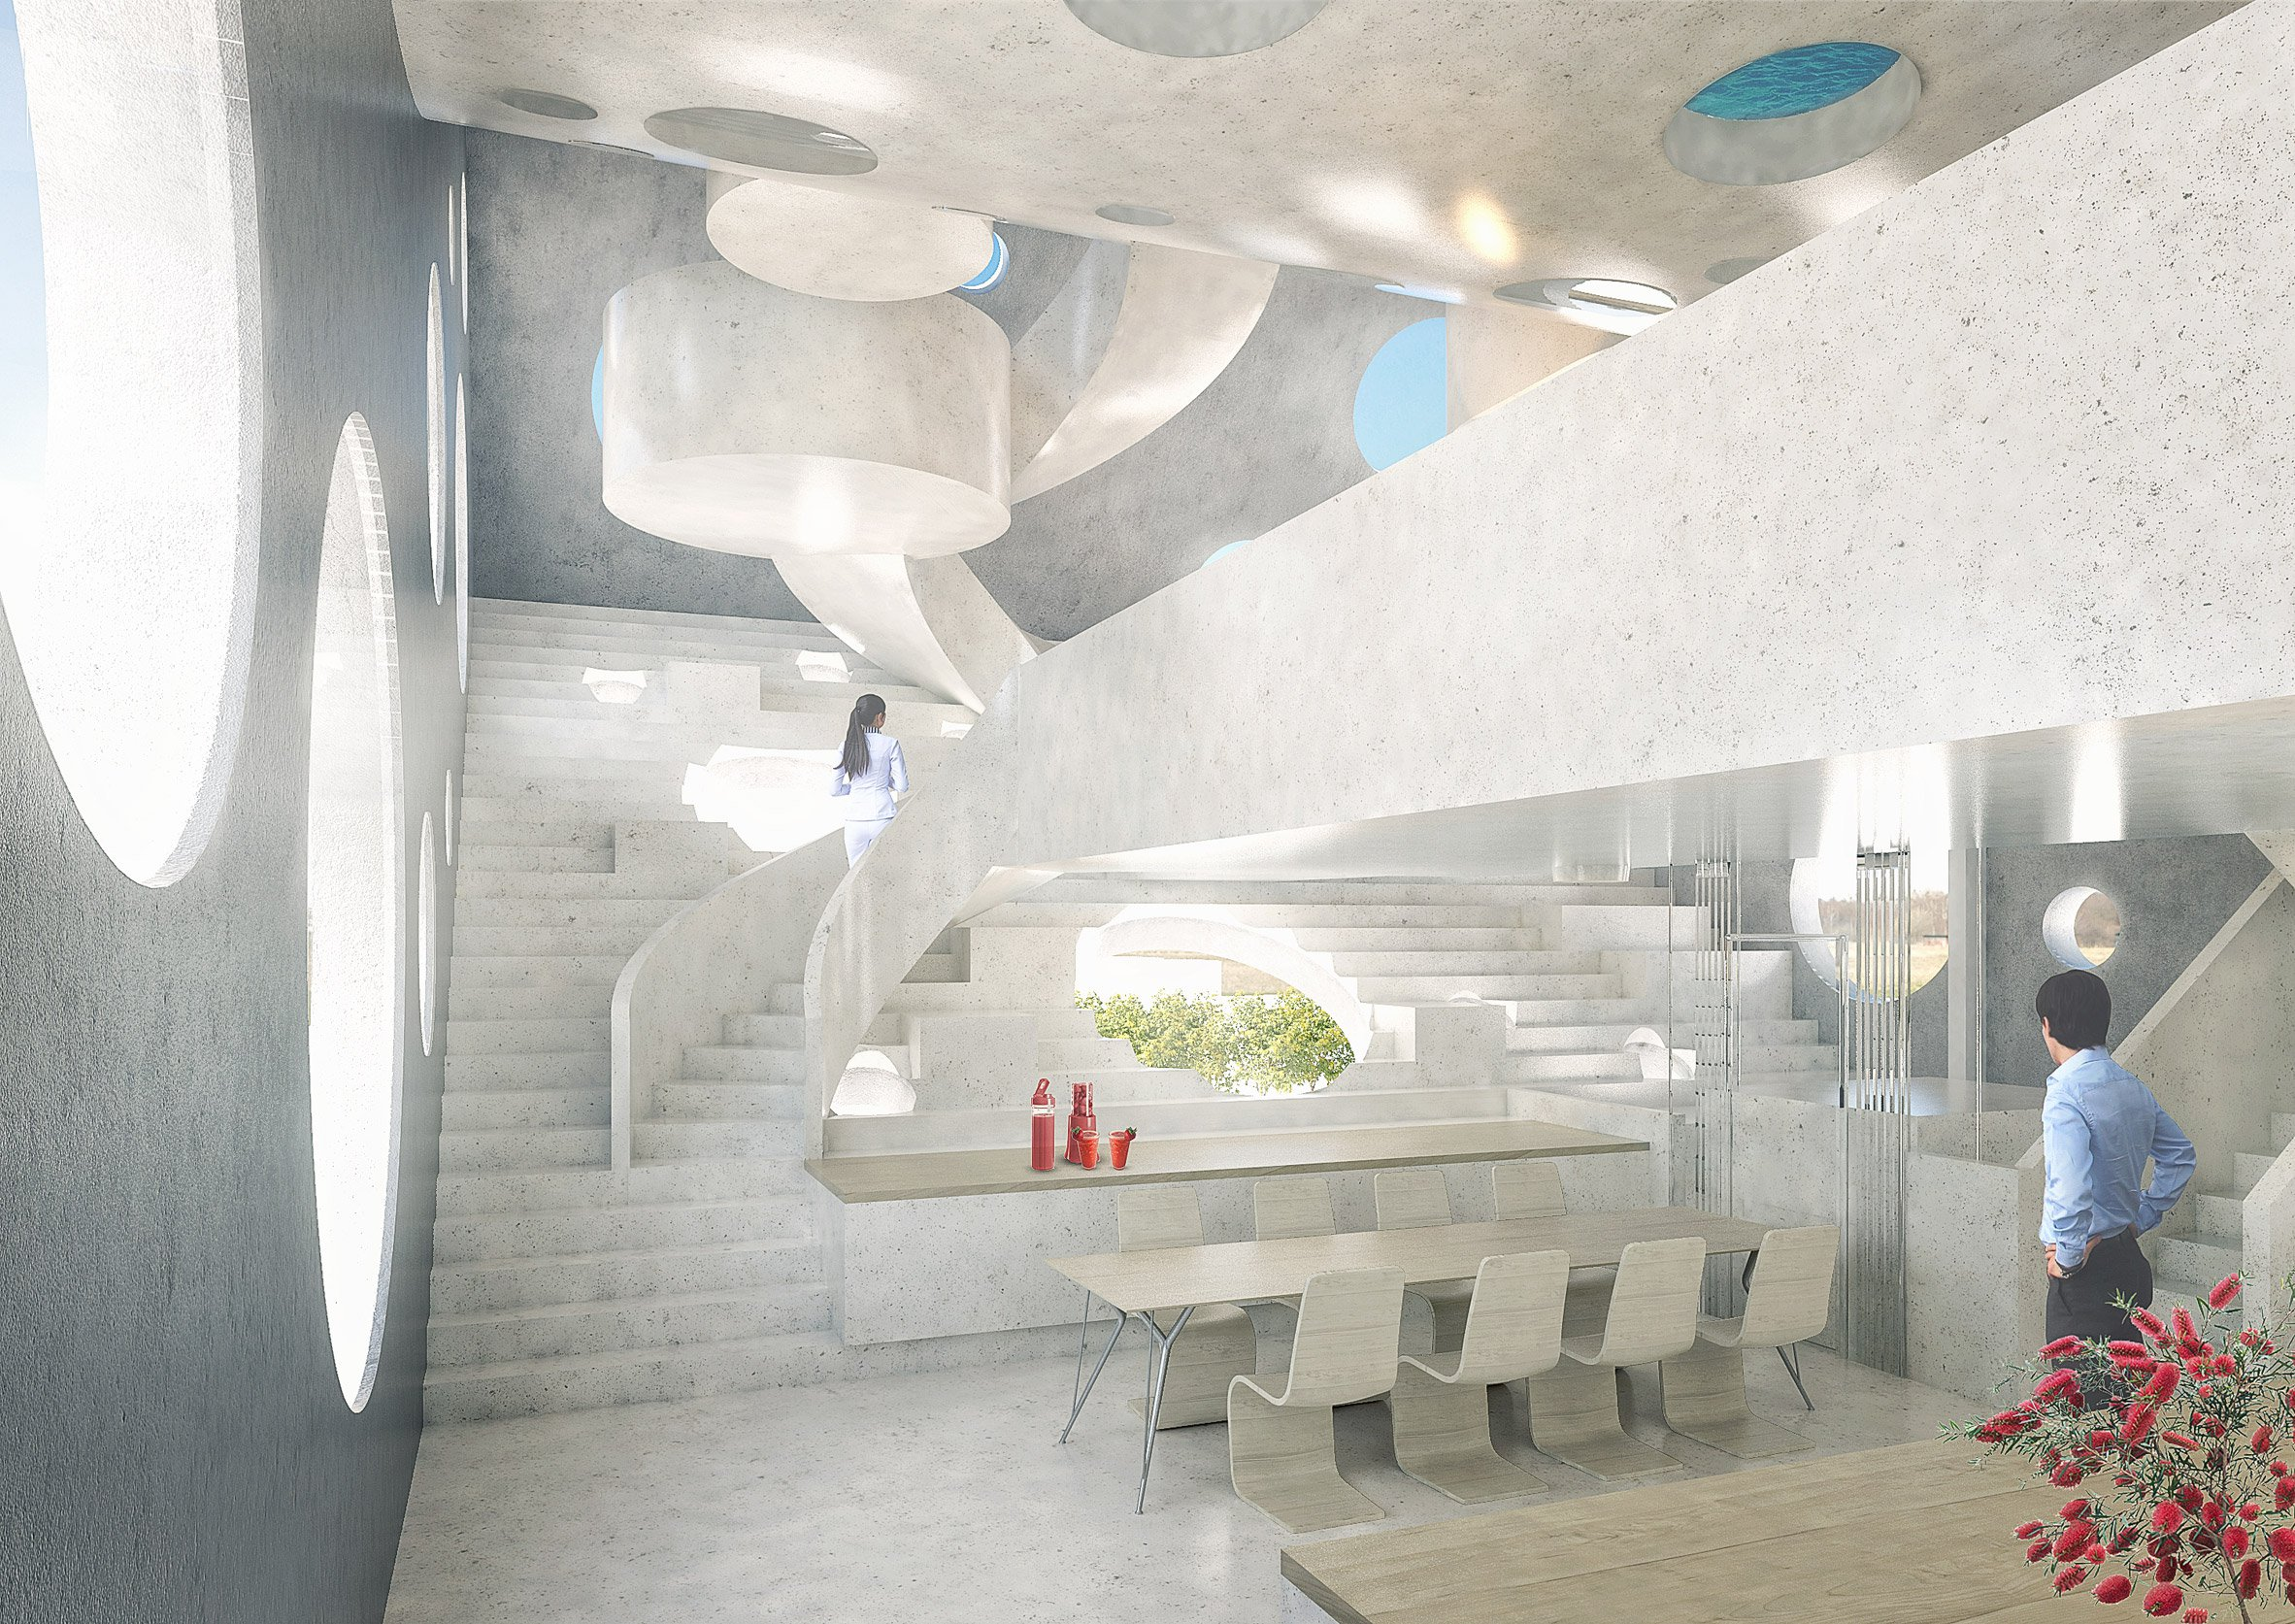 y-house-by-mvrdv-architecture-residential-taiwan_dezeen_2364_col_7